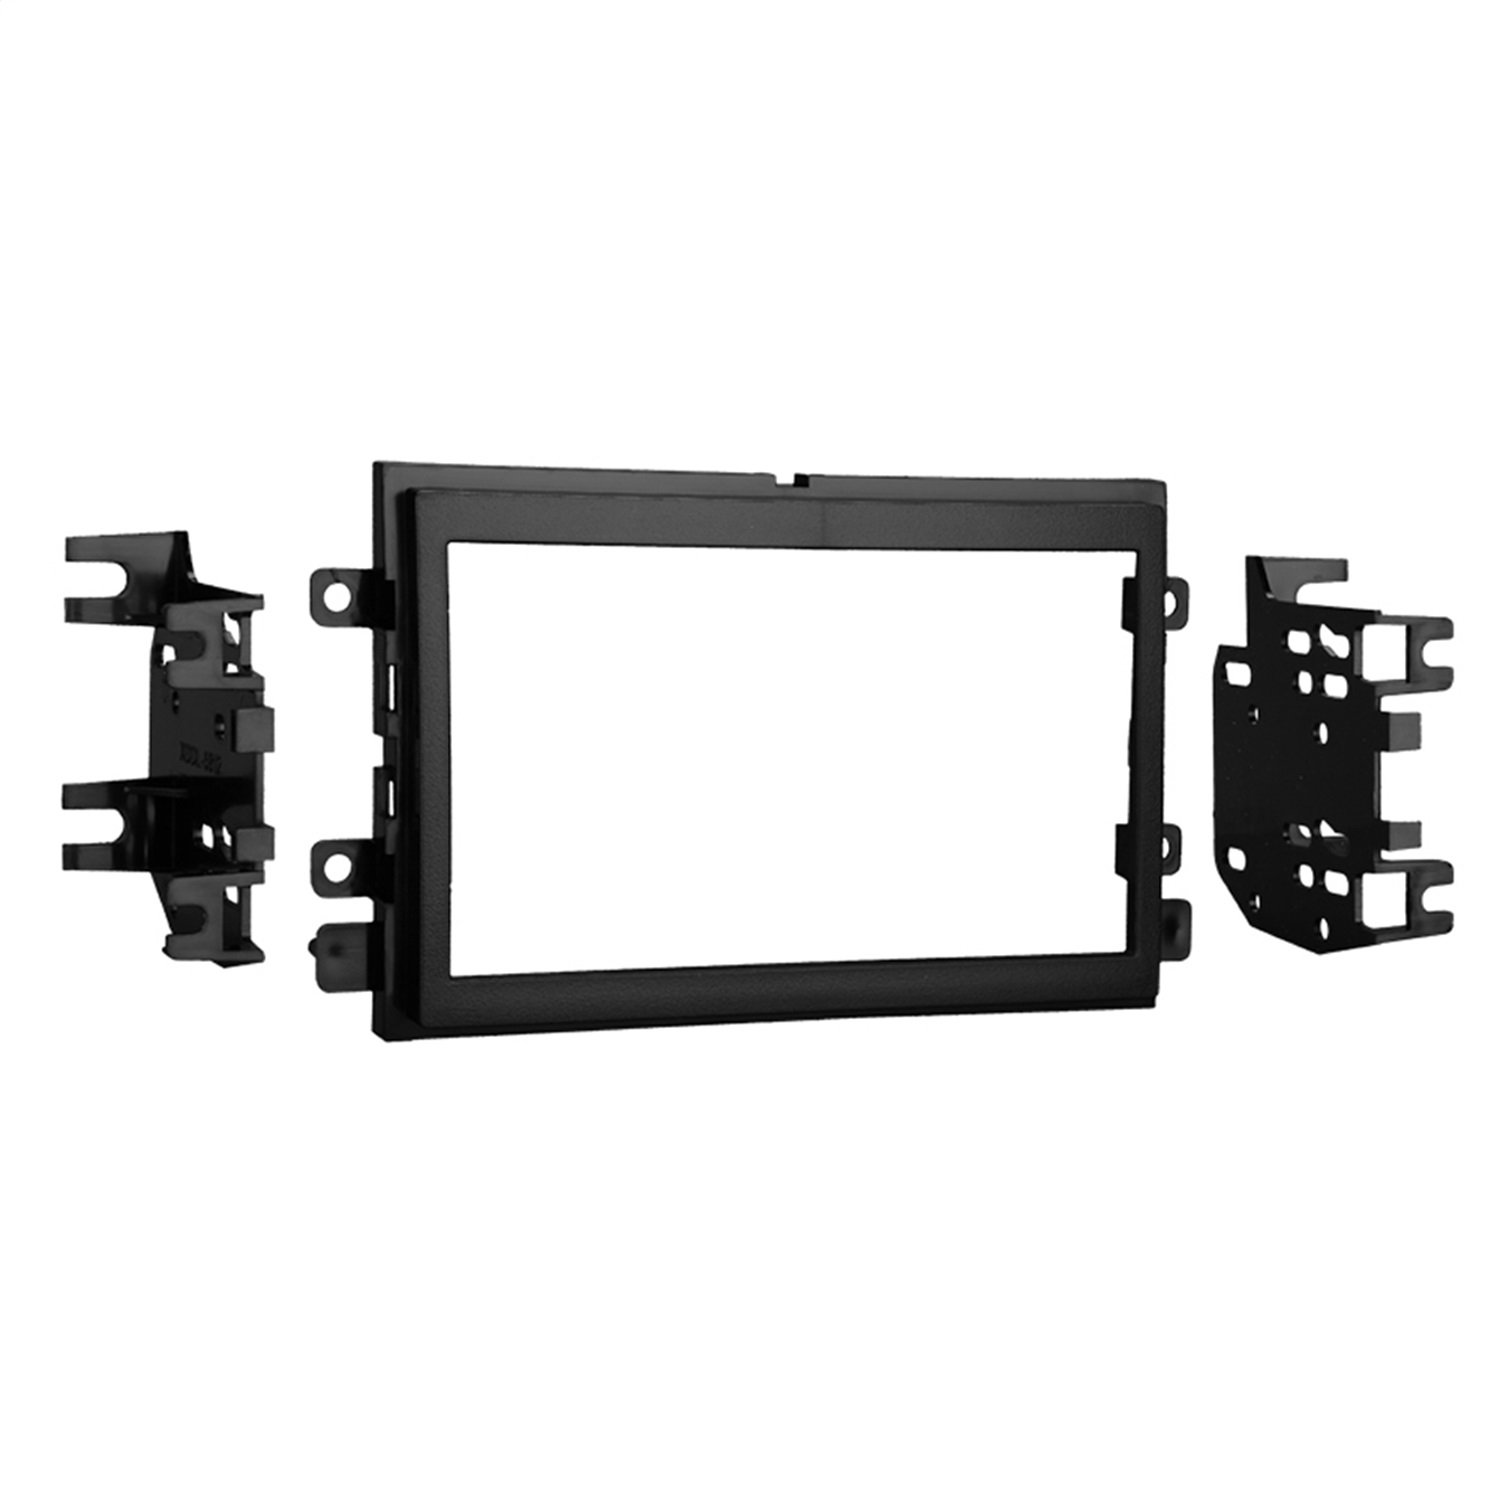 Metra 95-5812 Double DIN Installation Kit for Select 2004-up Ford Vehicles -Black METRA Ltd